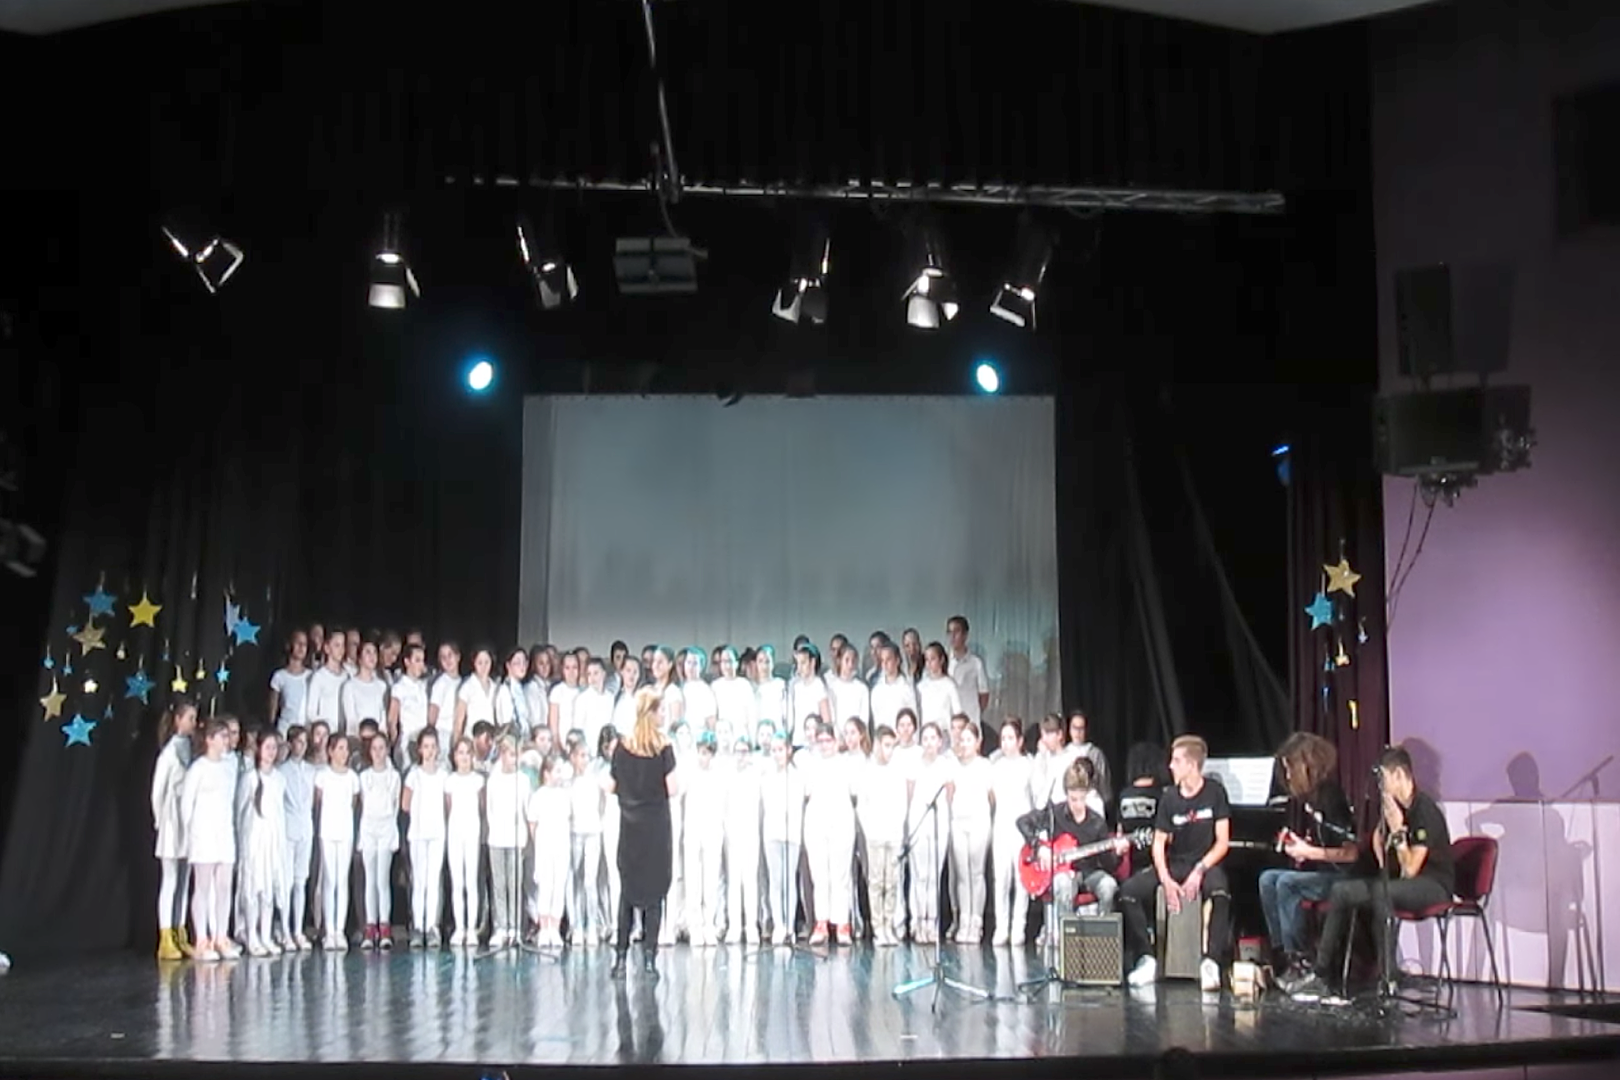 Children's Choir Covers Iron Maiden's 'Fear of the Dark'